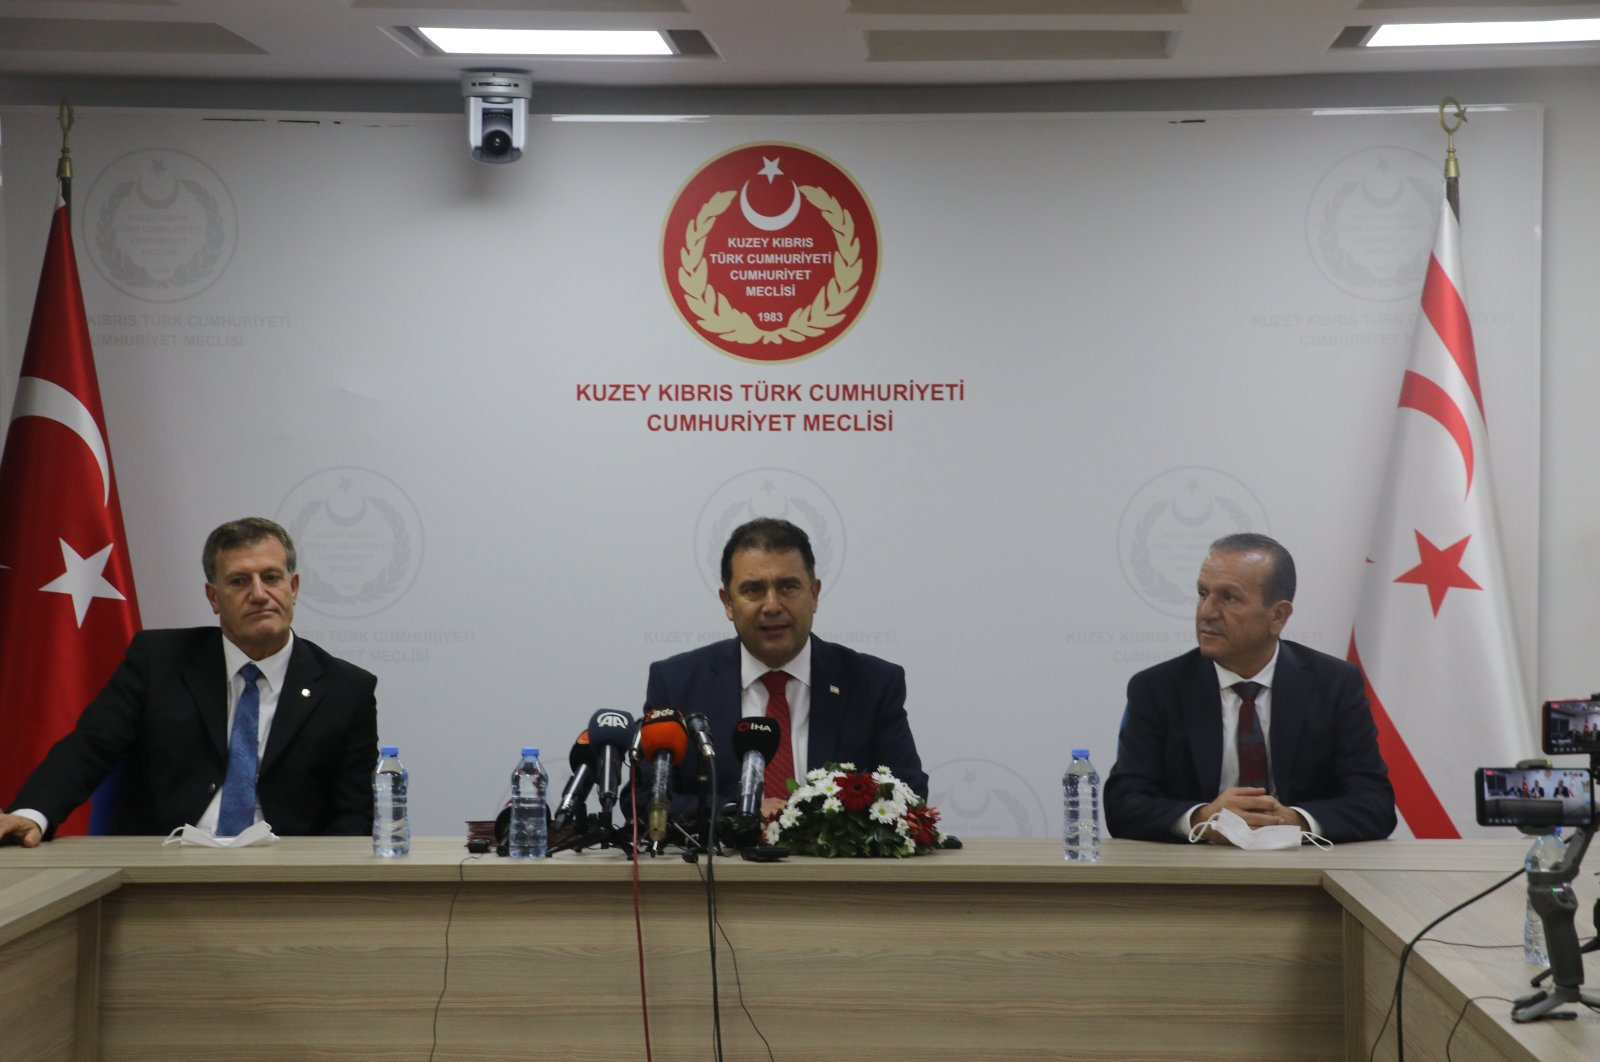 Vice Chairperson Ersan Saner (C), DP Chairperson Fikri Ataoğlu (R) and YDP Chairperson Erhan Arıklı sign an accord to form a coalition government in the TRNC on Dec. 8, 2020 (AA Photo)